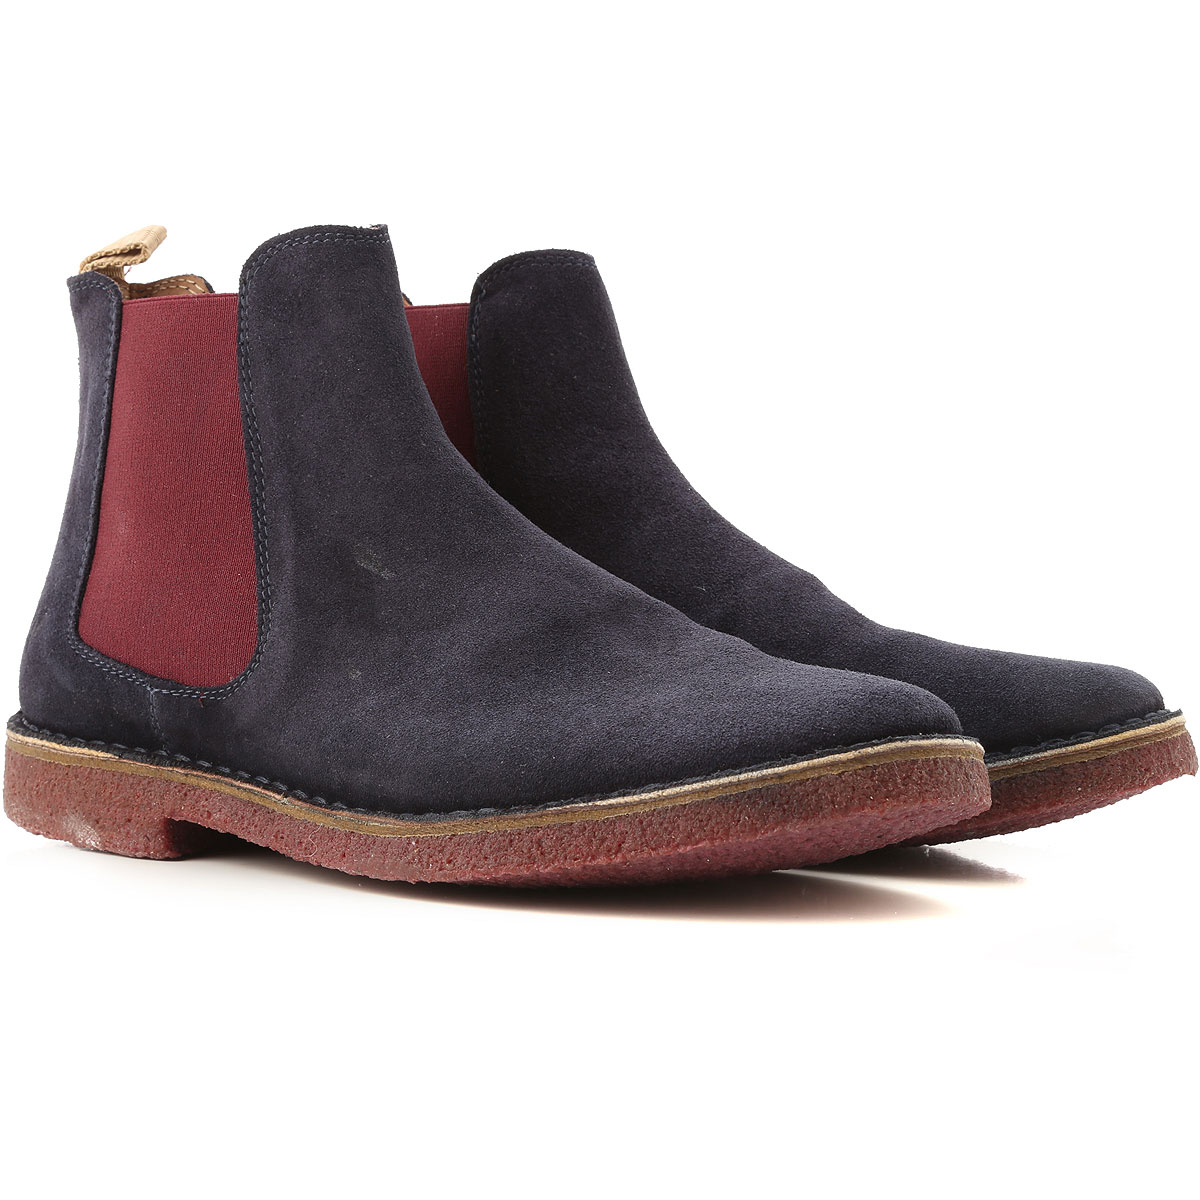 Wally Walker Boots for Men, Booties On Sale in Outlet, dark Navy, Suede leather, 2019, 10 10.5